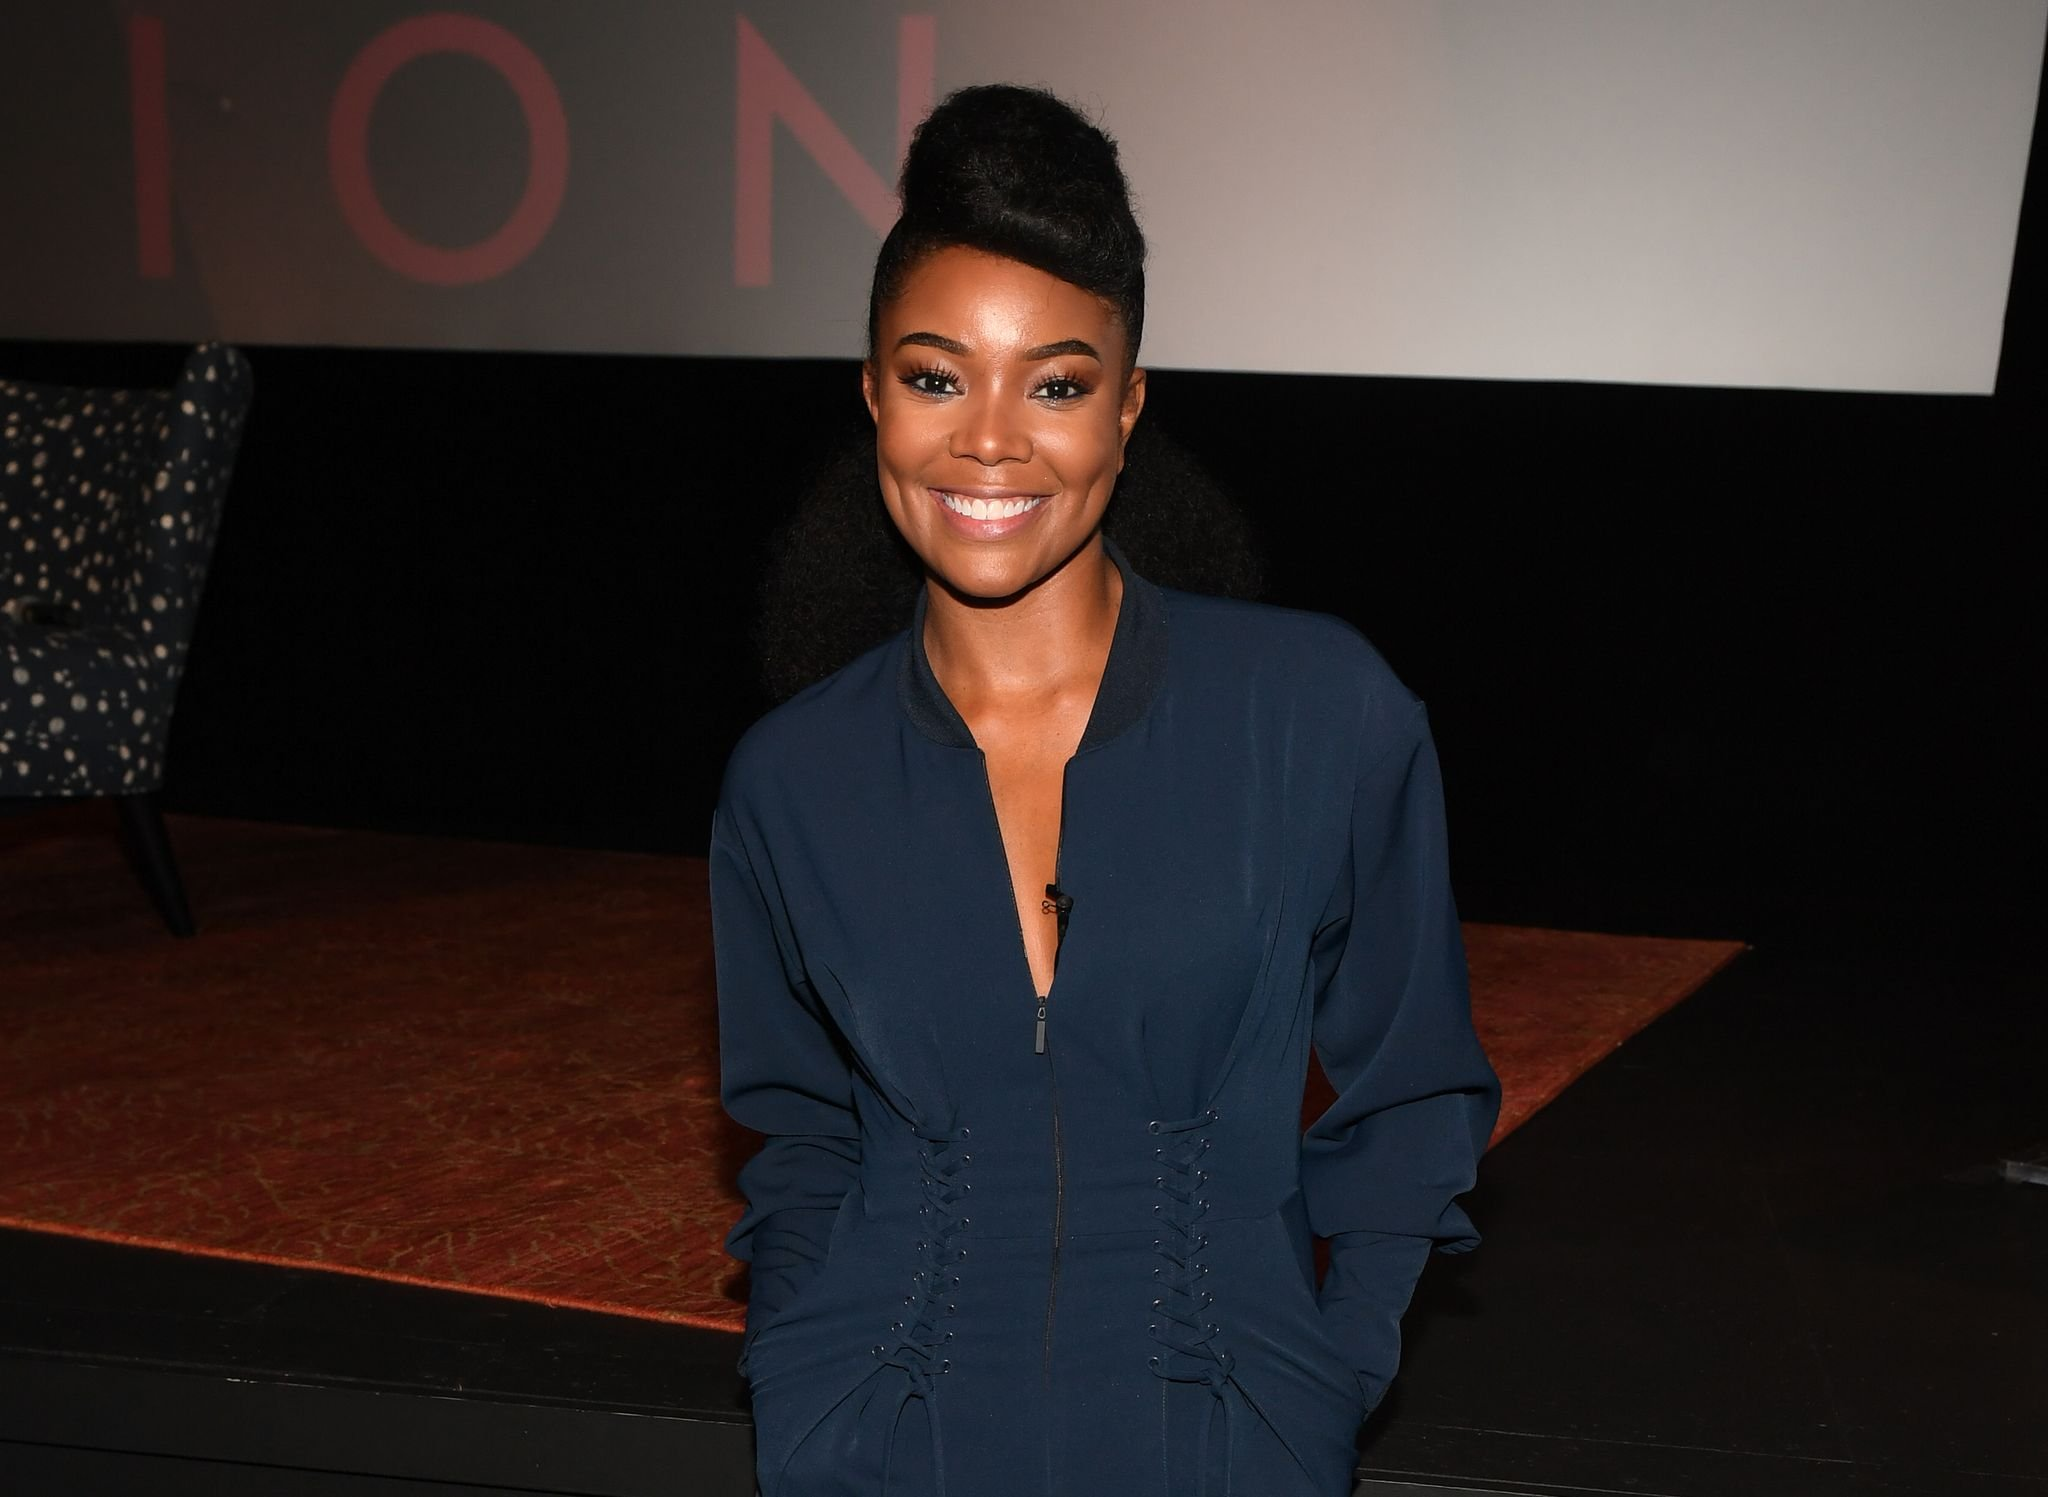 Gabrielle Union promotes her book at SCADshow on October 20, 2017 in Atlanta.   Photo: Getty Images